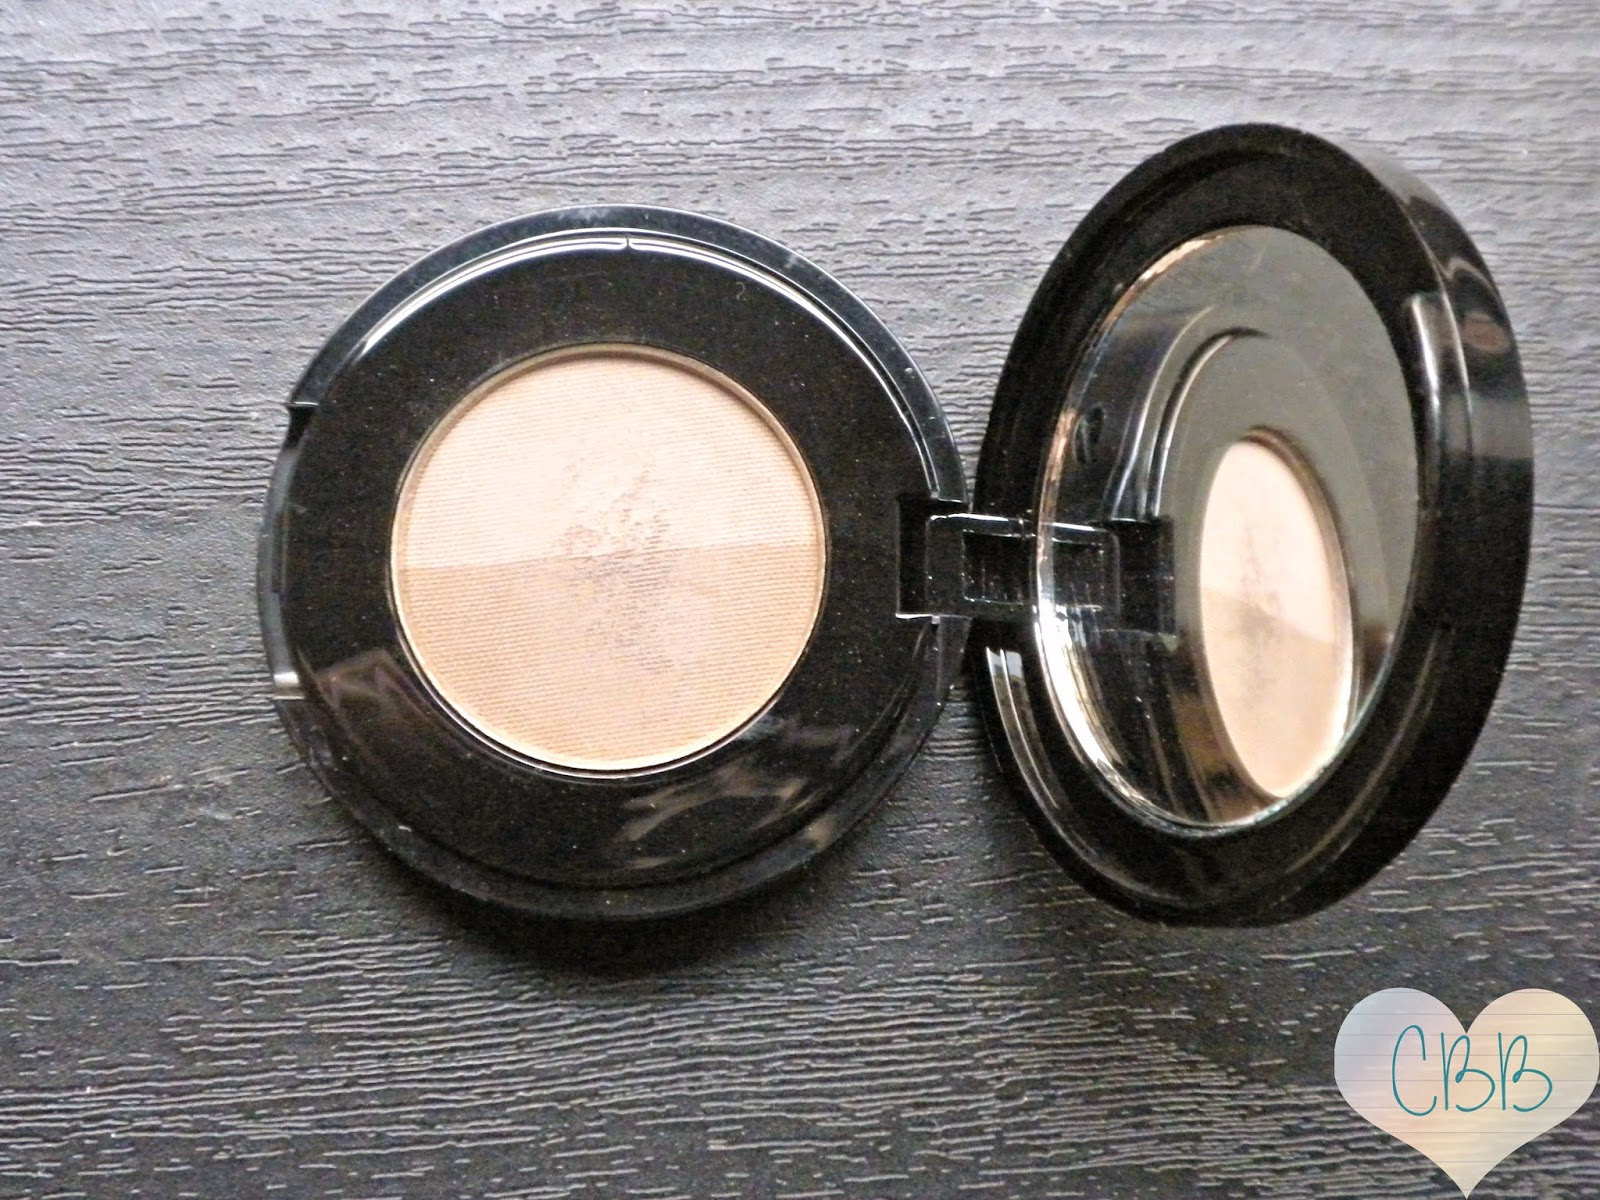 Brow Powder: ANASTASIA OF BEVERLY HILLS Brow Powder Duo in Medium Brown ($23)